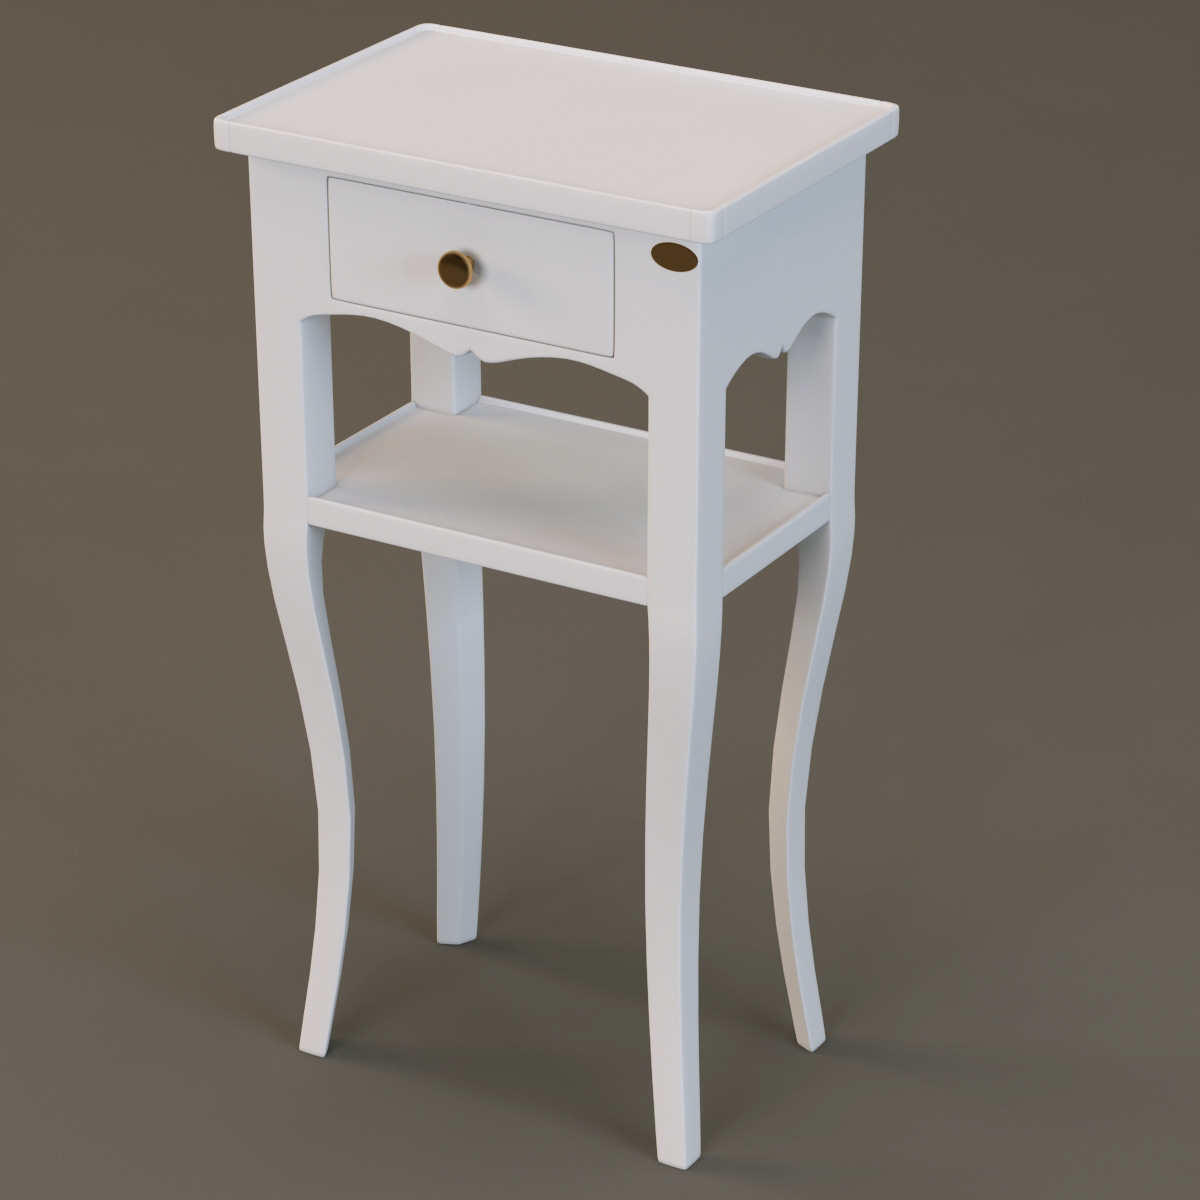 Console table 001 3d model max obj fbx - Table comptoir de famille ...